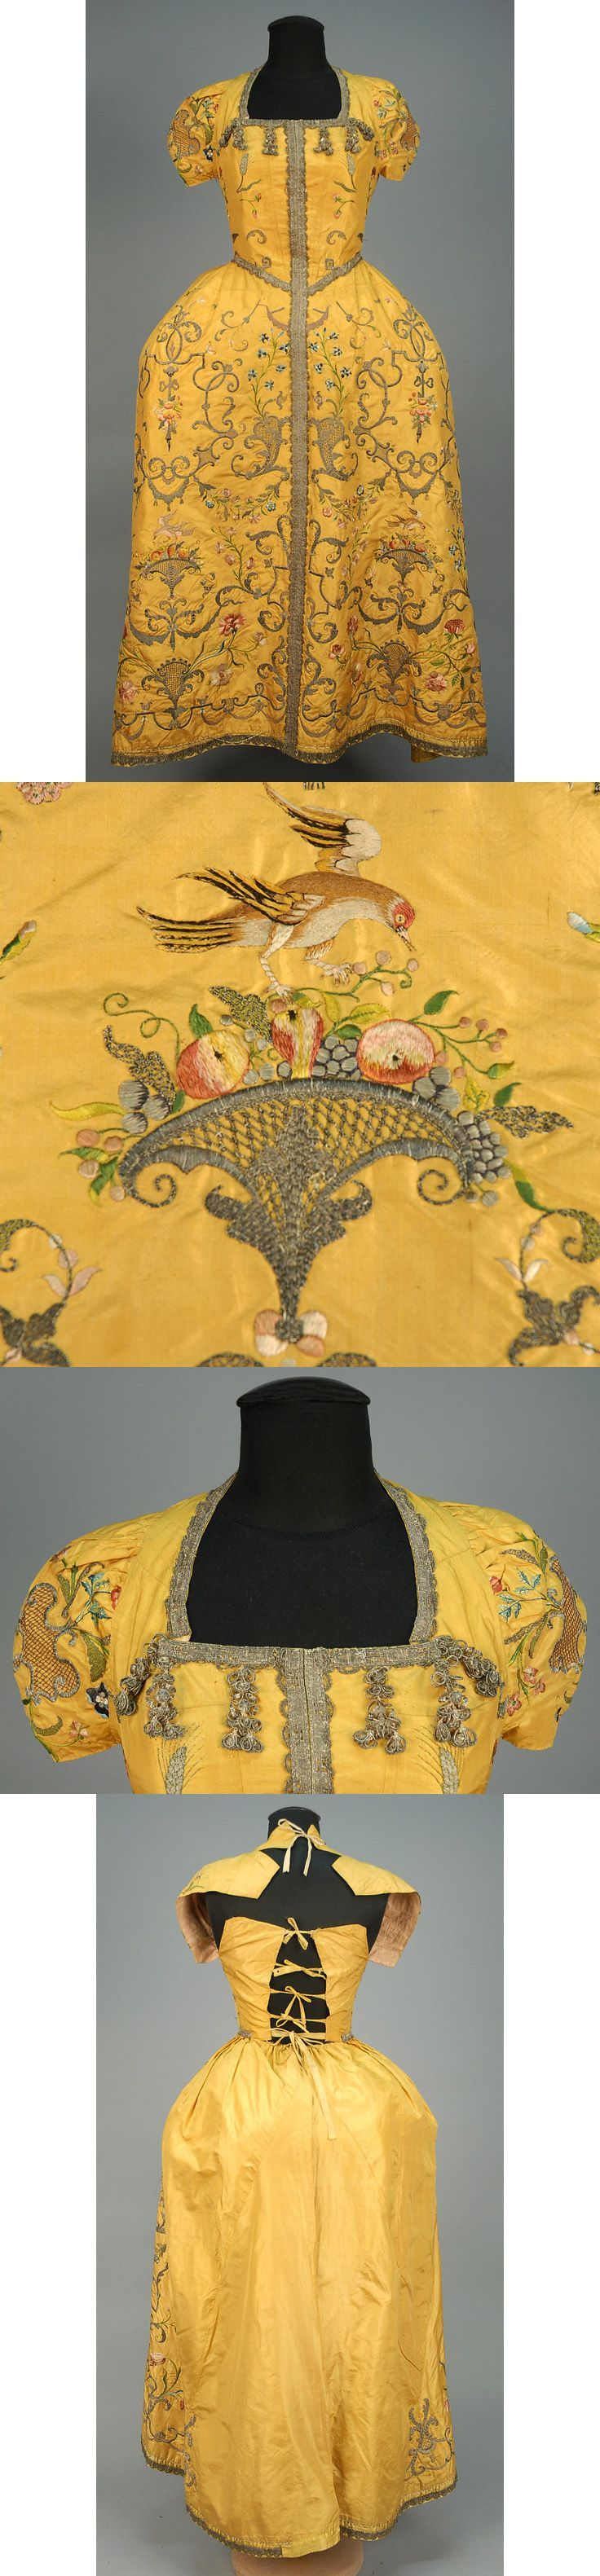 METALLIC EMBROIDERED SILK VESTMENT, PROBABLY FRENCH, c. 1725.